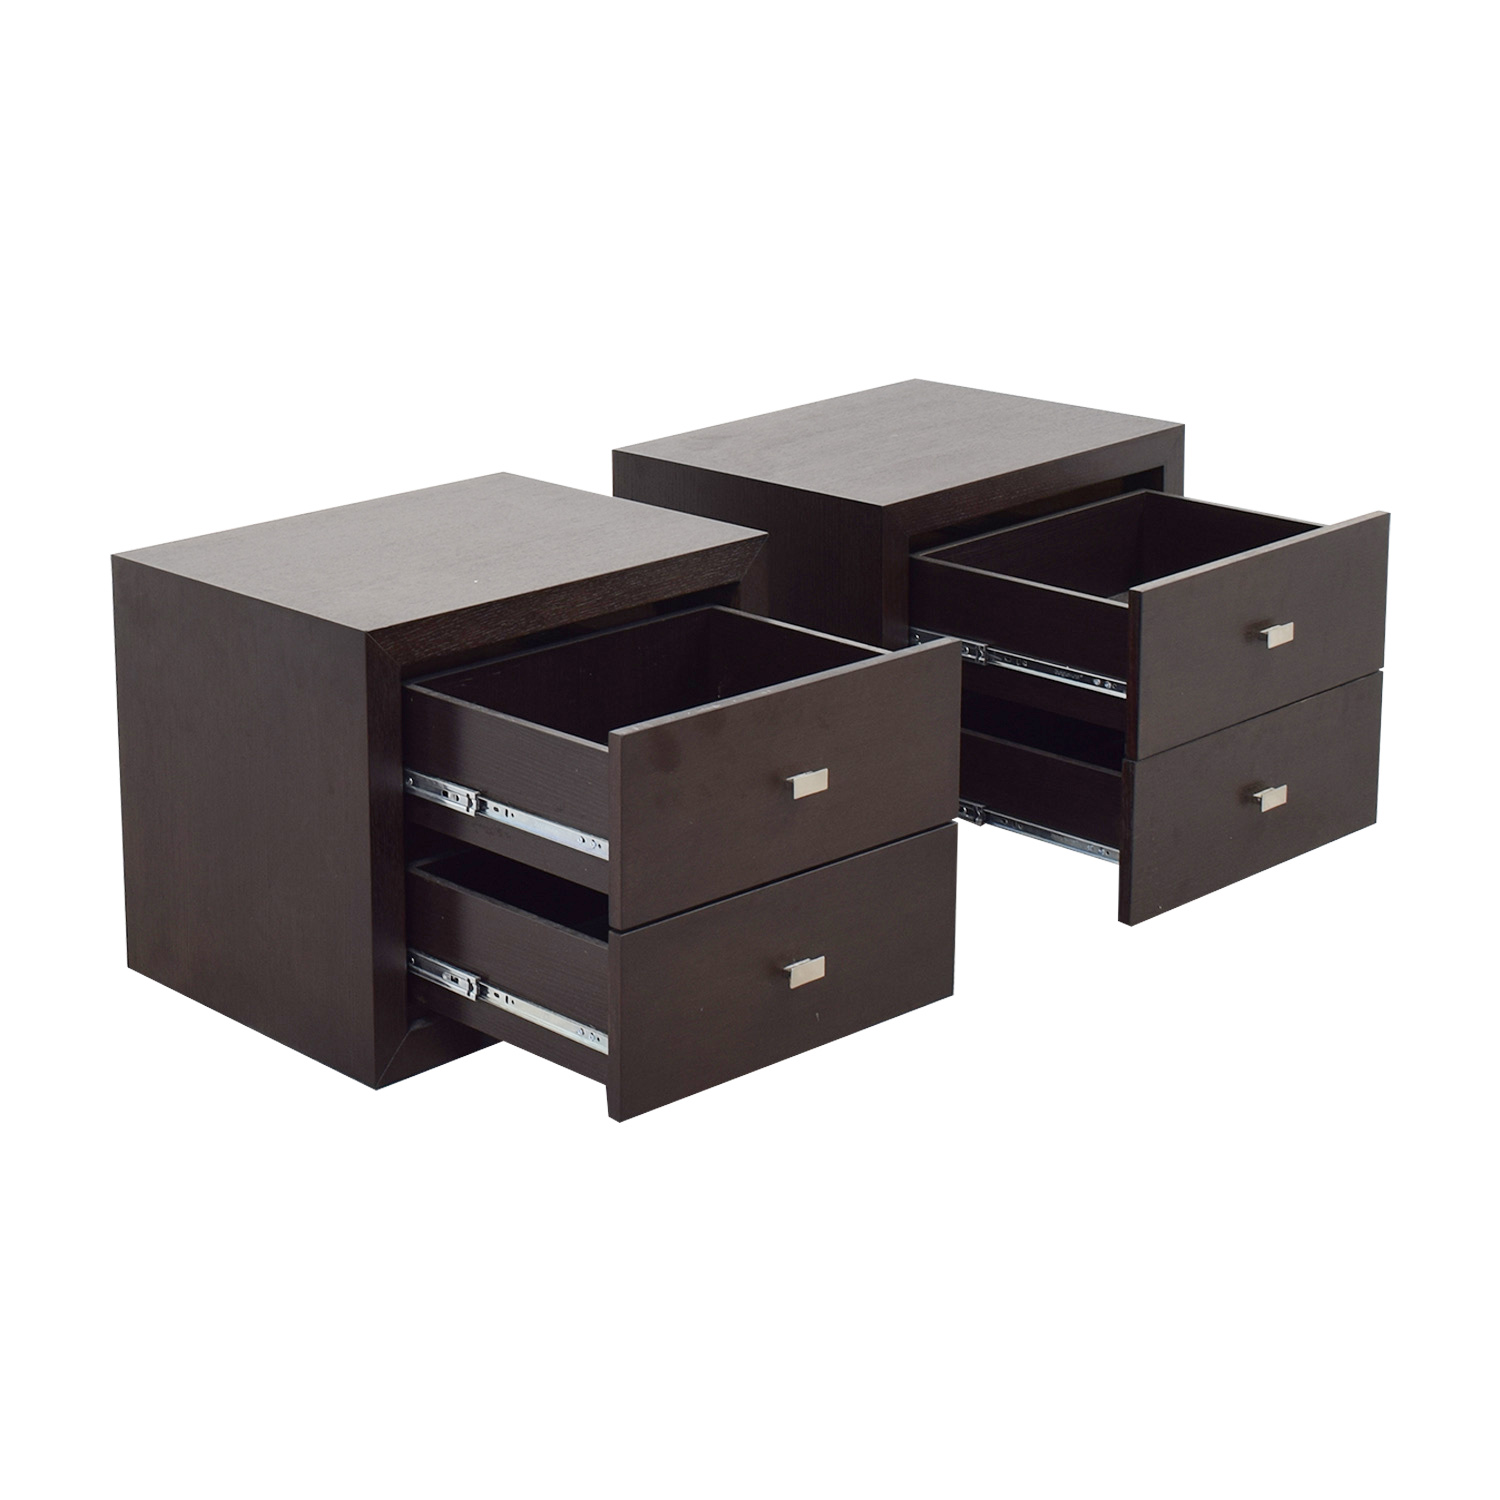 Two-Drawer Wood Nightstands for sale